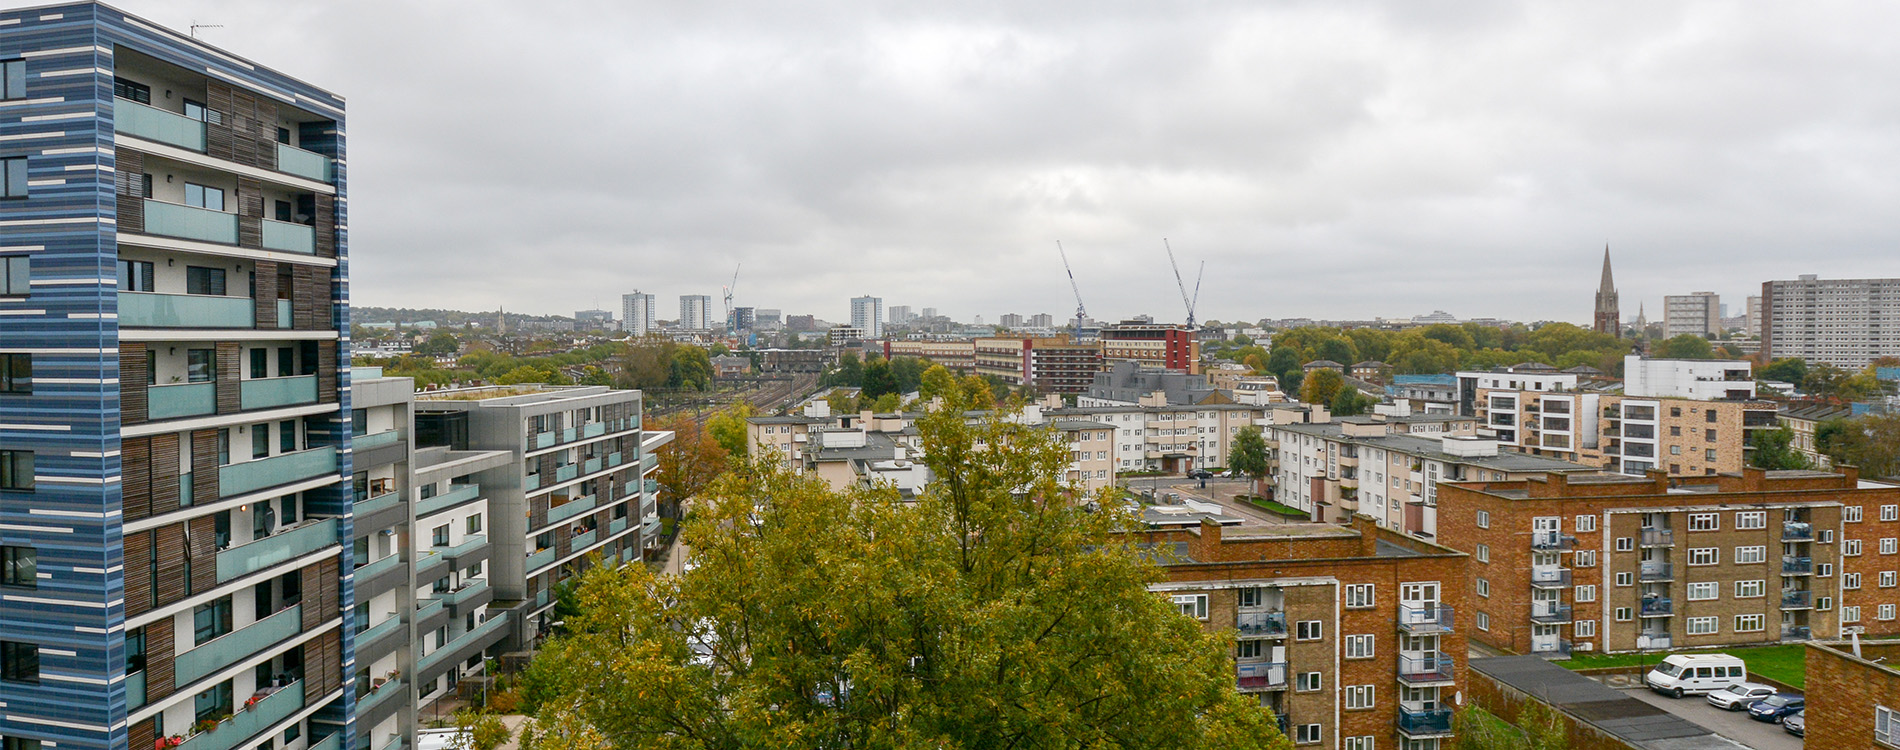 Wide shot showing many social housing void properties maintained by axis